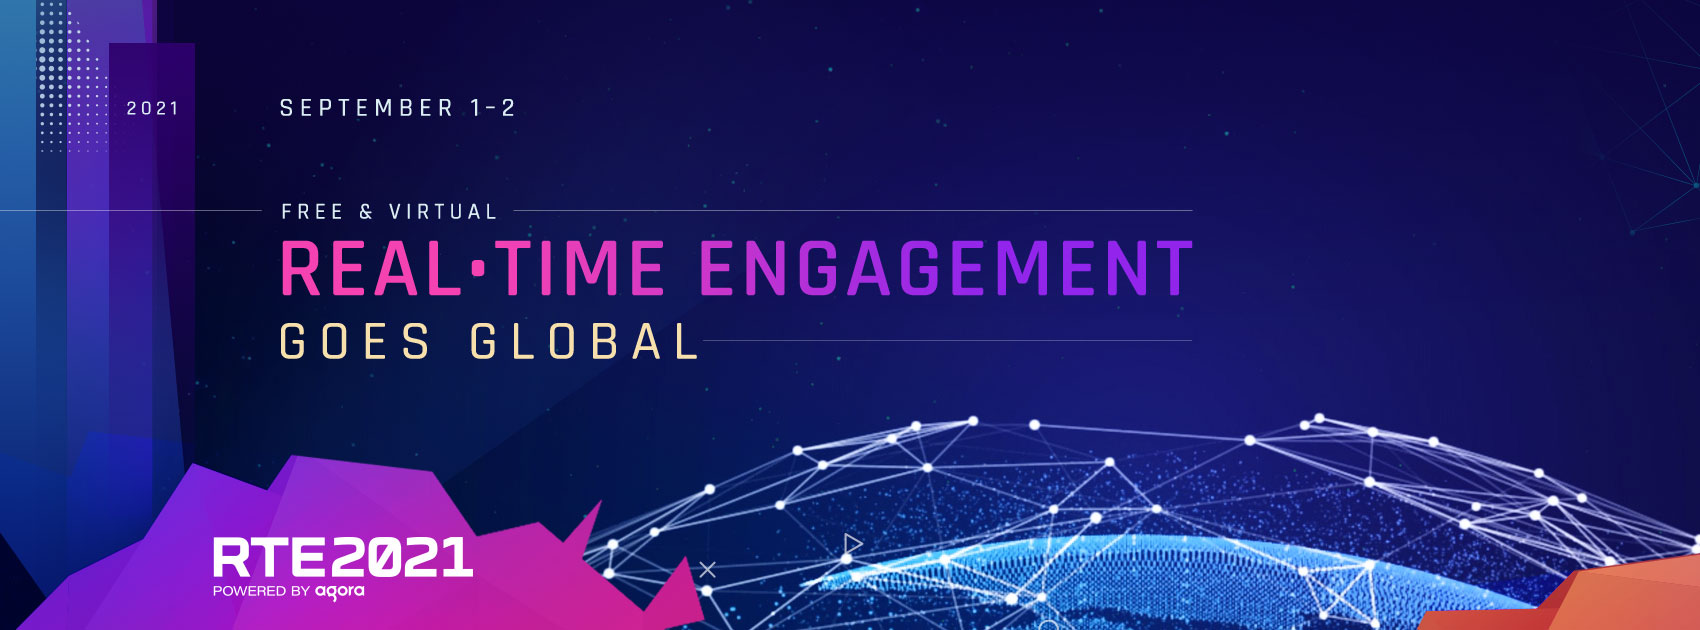 RTE2021 - Free and virtual Real-time Engagement goes global - September 1-2